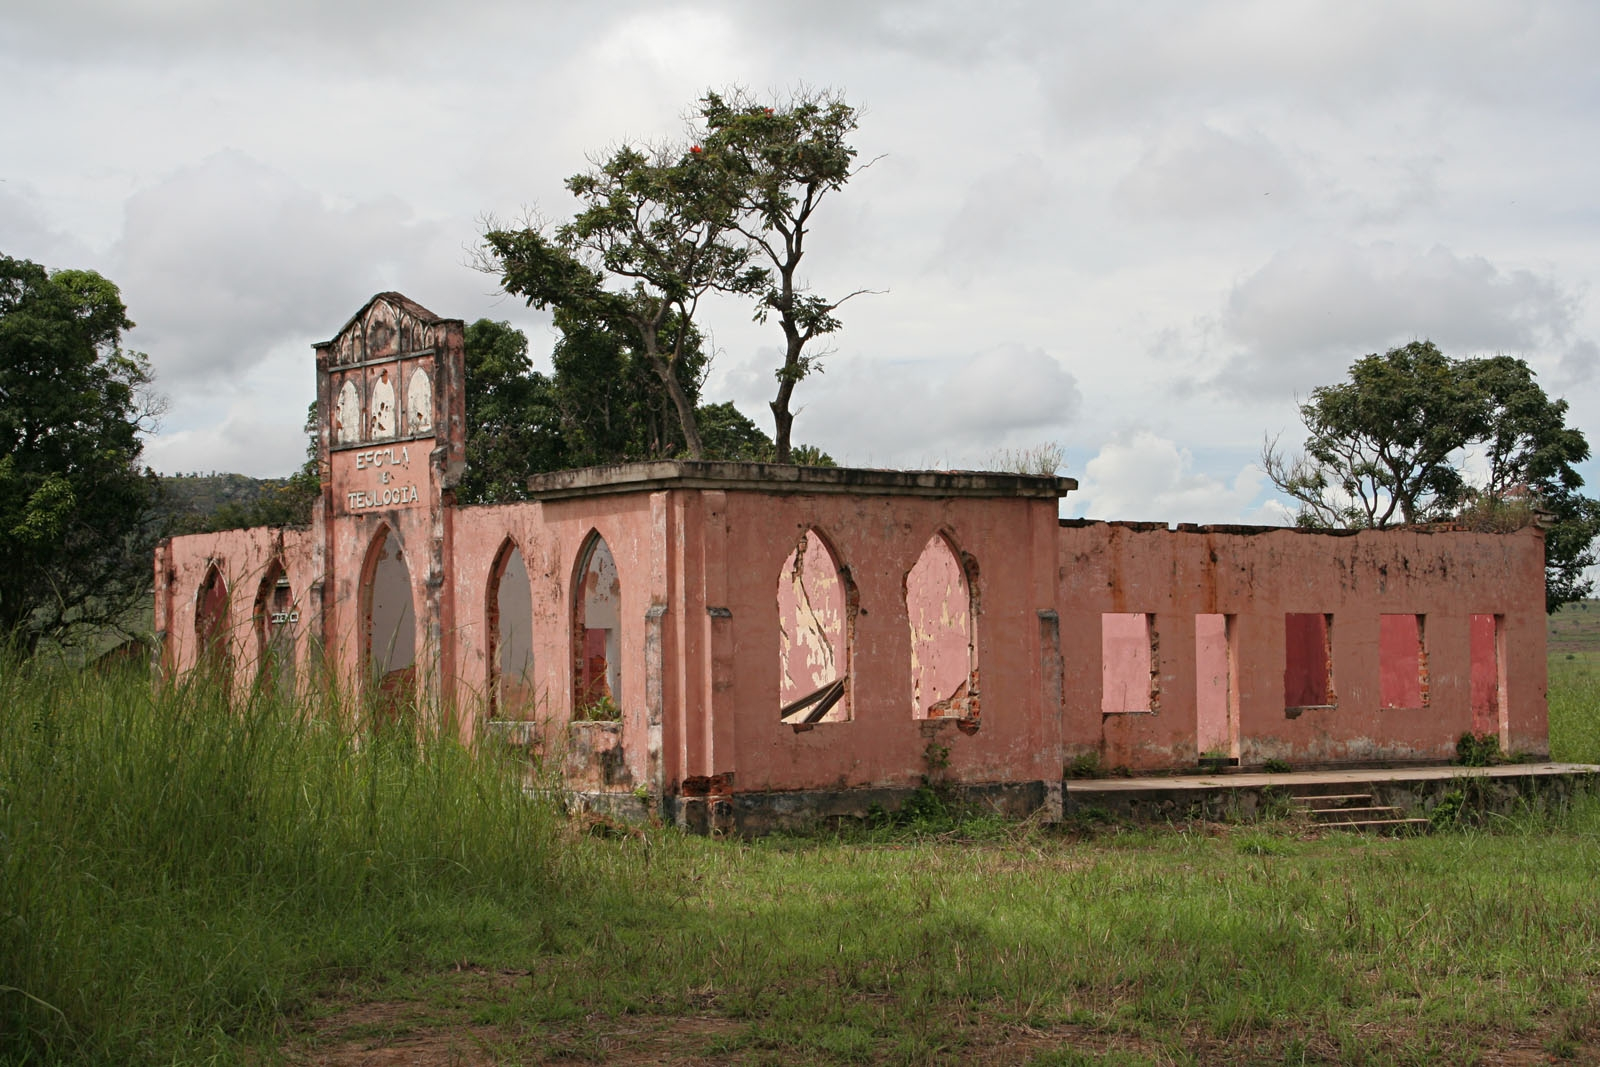 Quessua School of Theology gutted